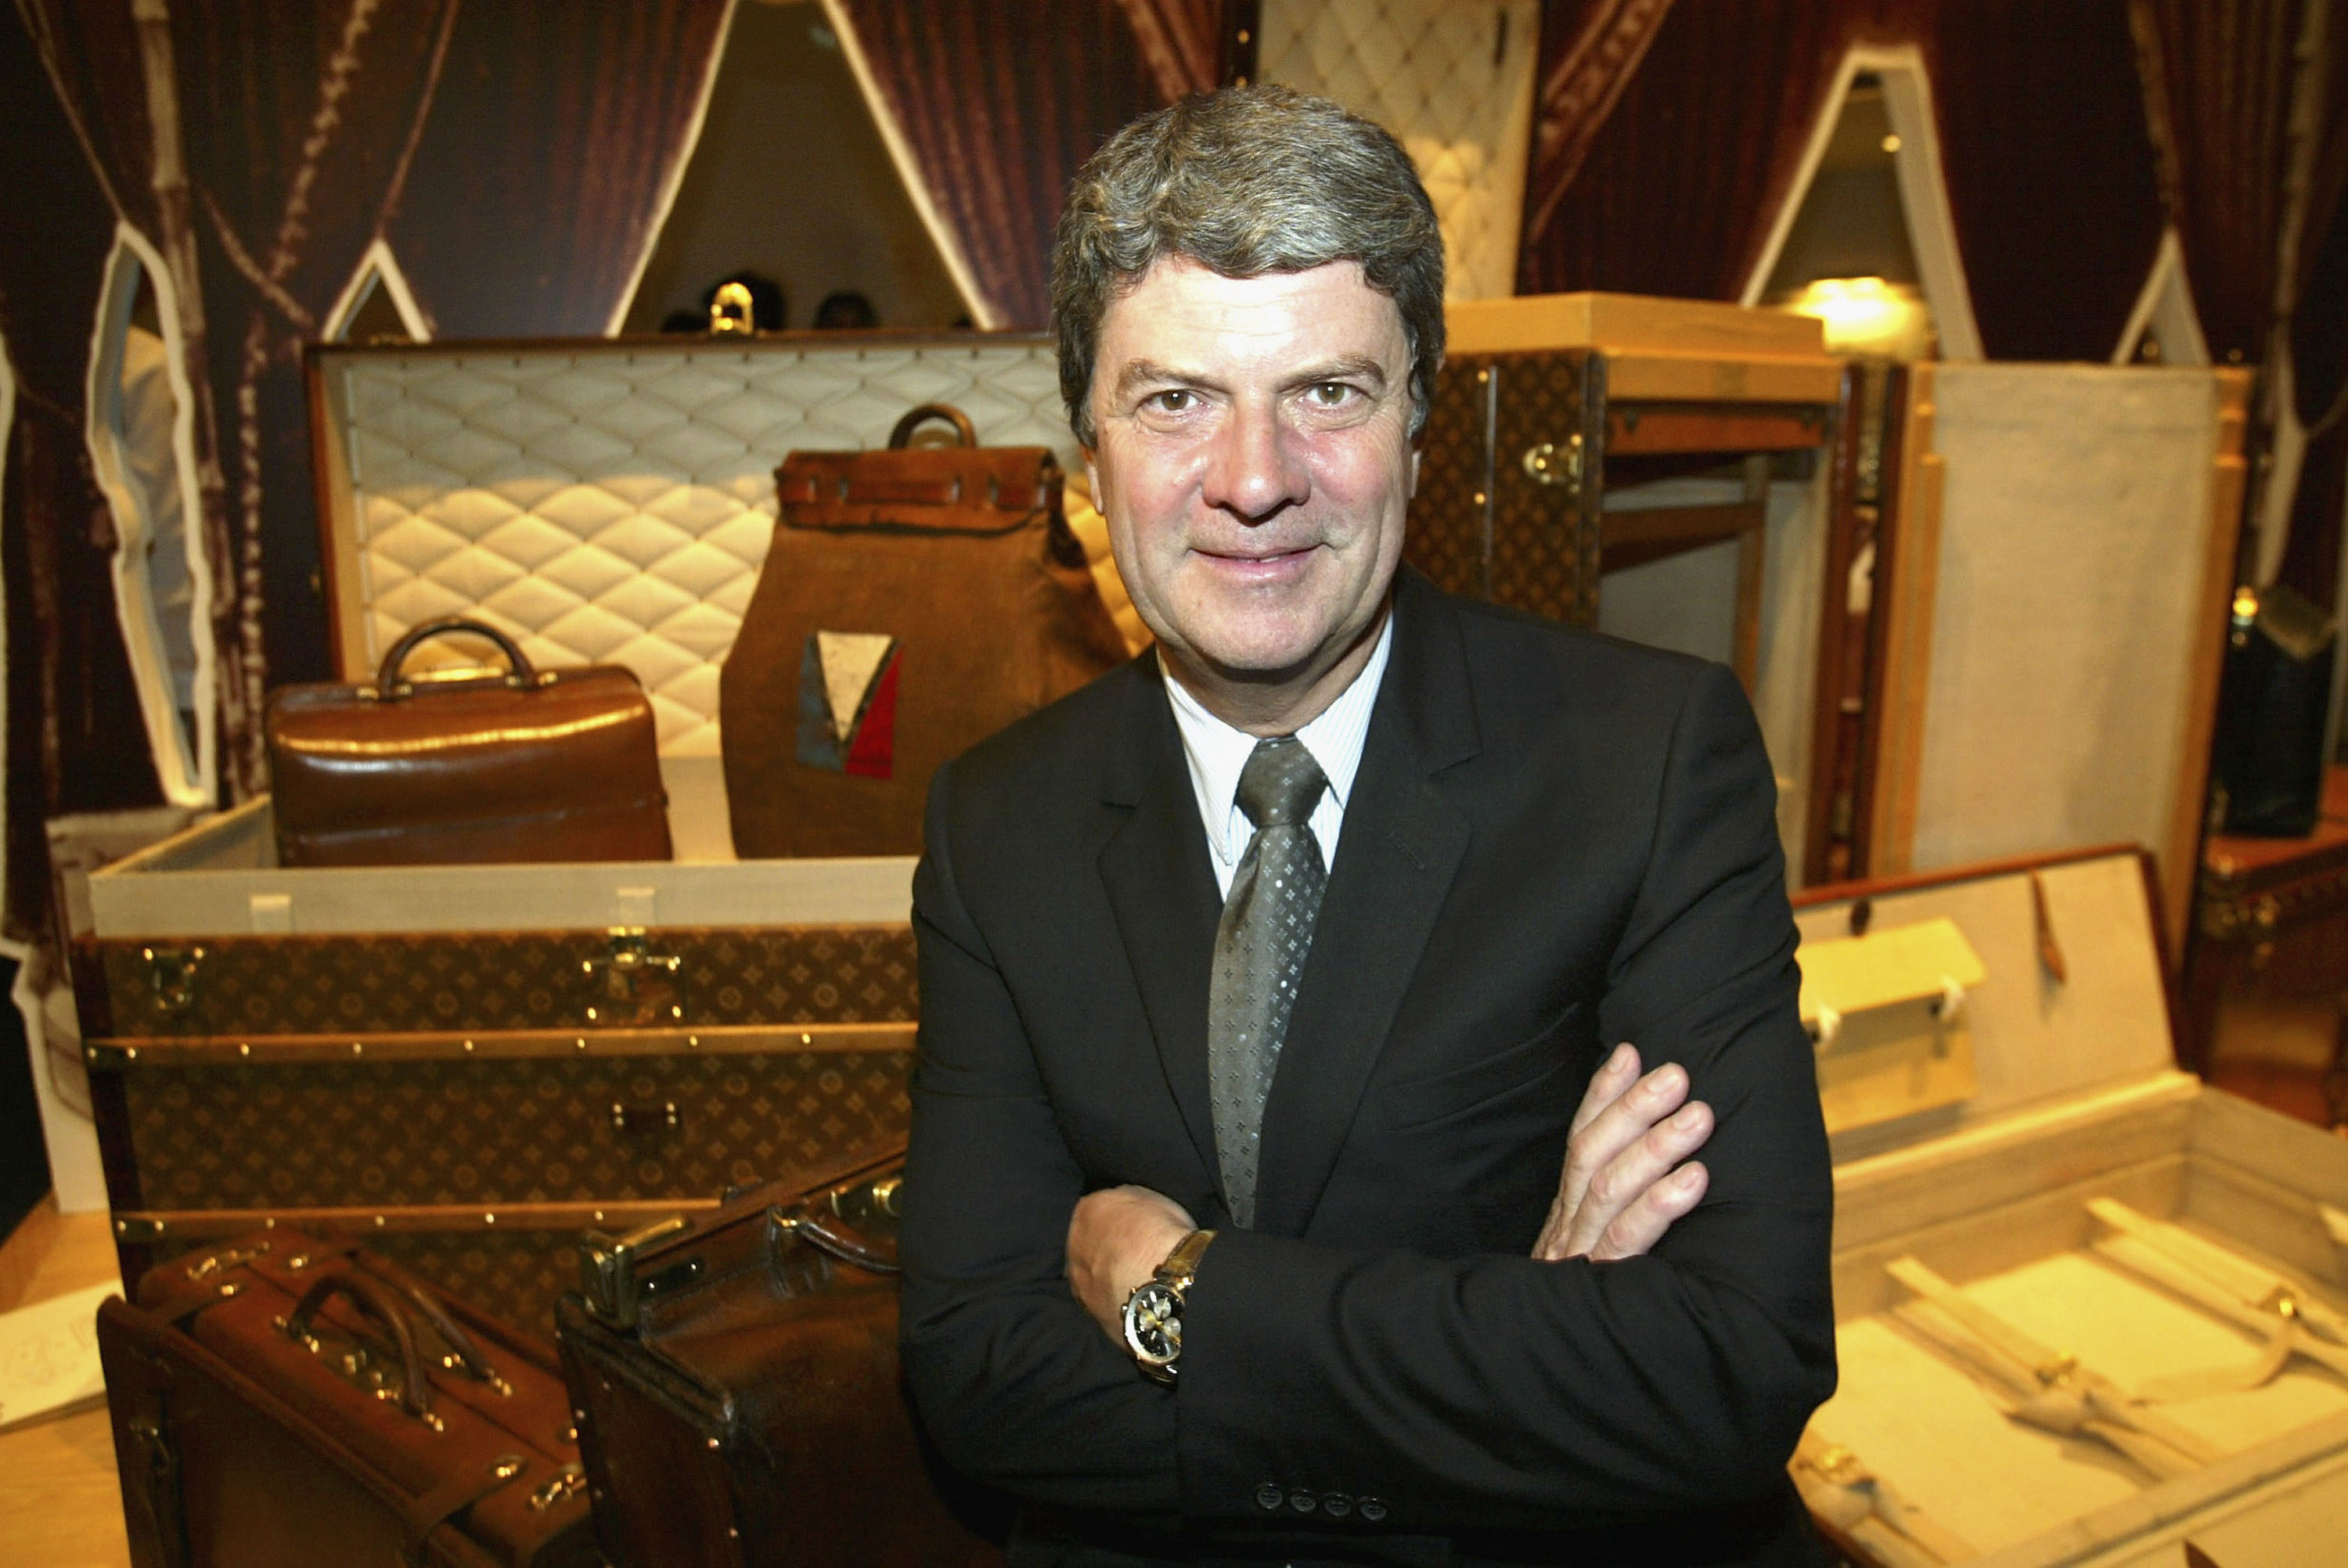 22b4f7c03b3 Yves Carcelle Of Louis Vuitton Has Passed Away At Age 66 - Daily ...